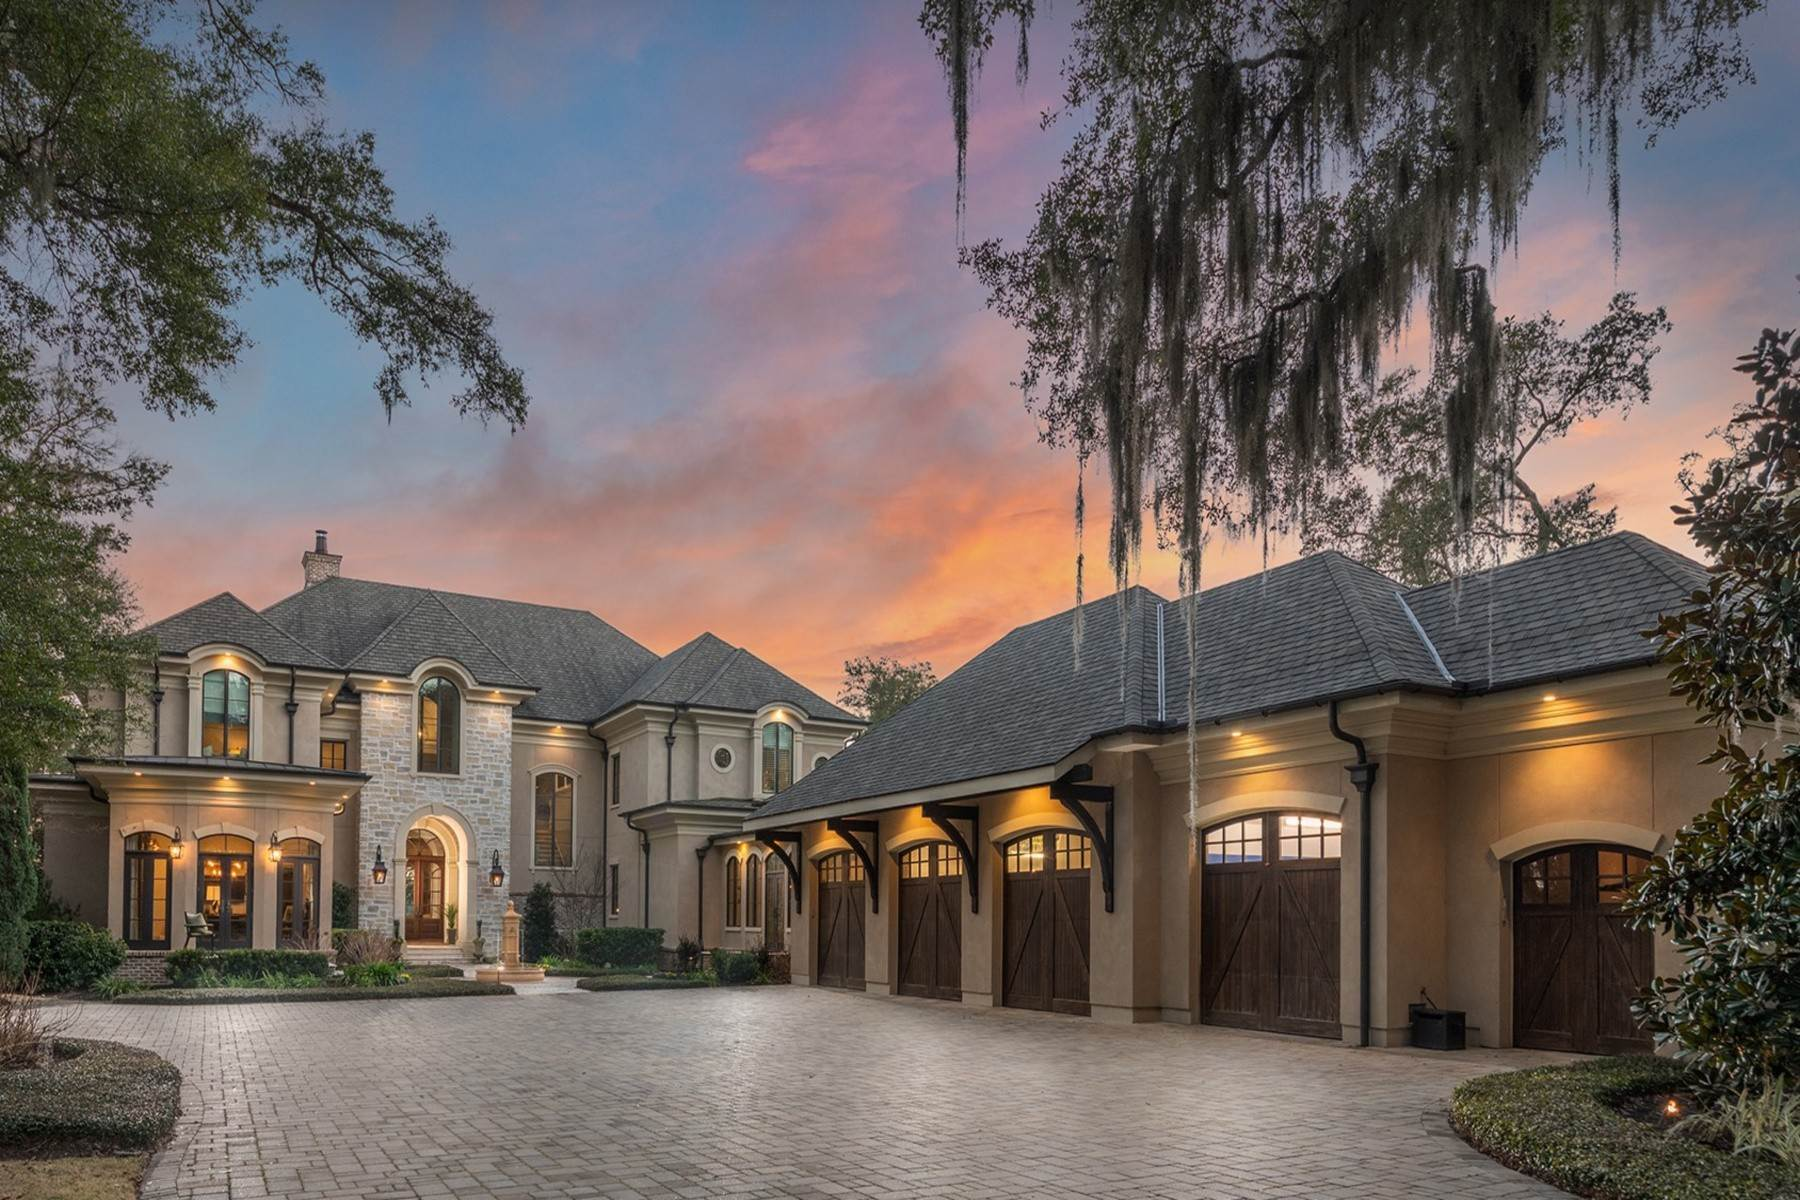 Single Family Homes for Sale at Exclusive Tidewater Landing 90 Tidewater Manor Hilton Head Island, South Carolina 29926 United States